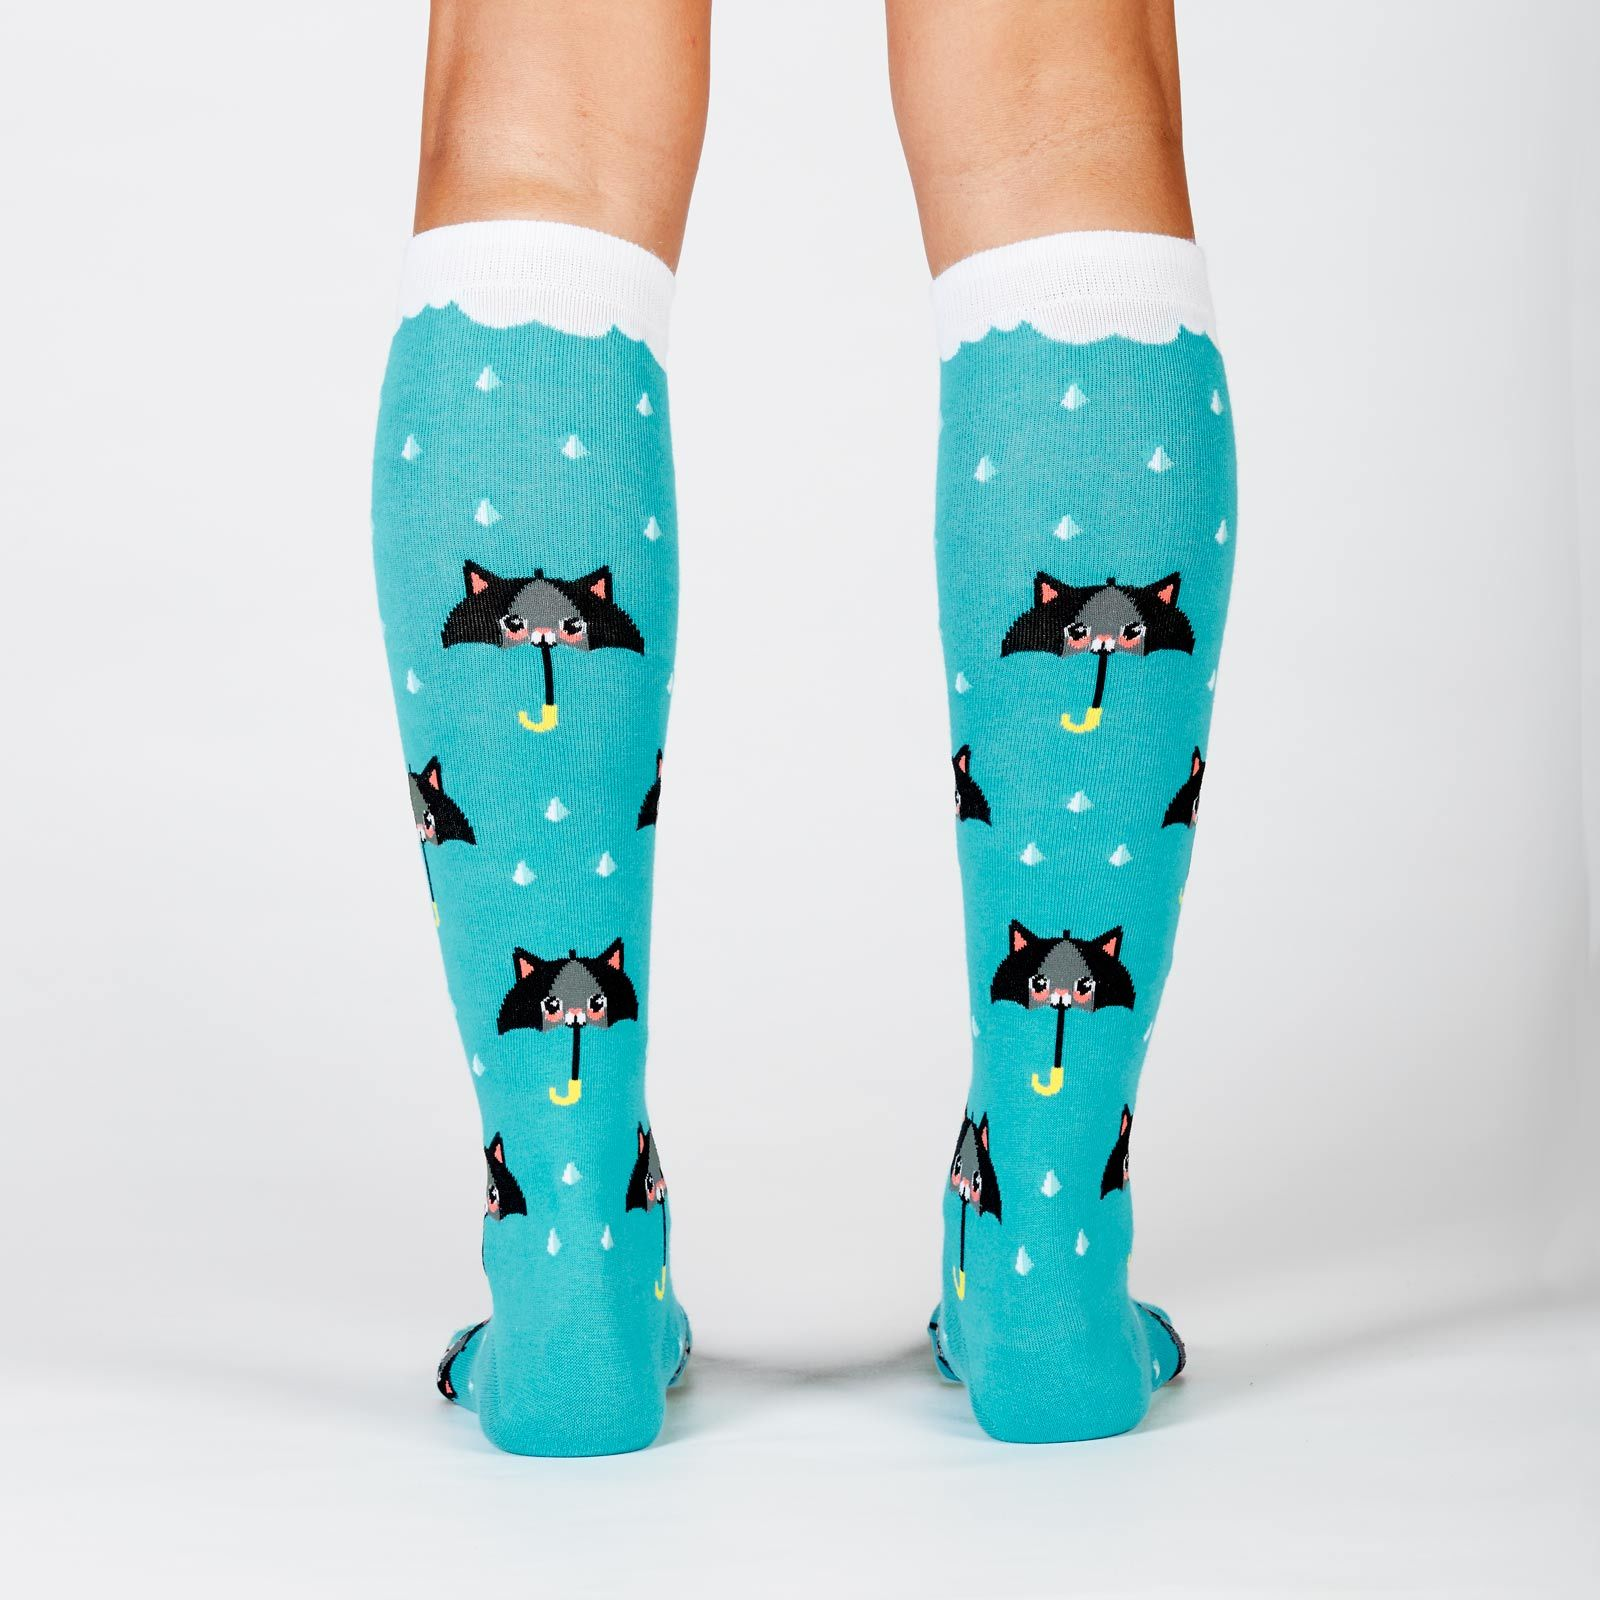 Women's - 50% Chance Of Cats Knee High Socks image